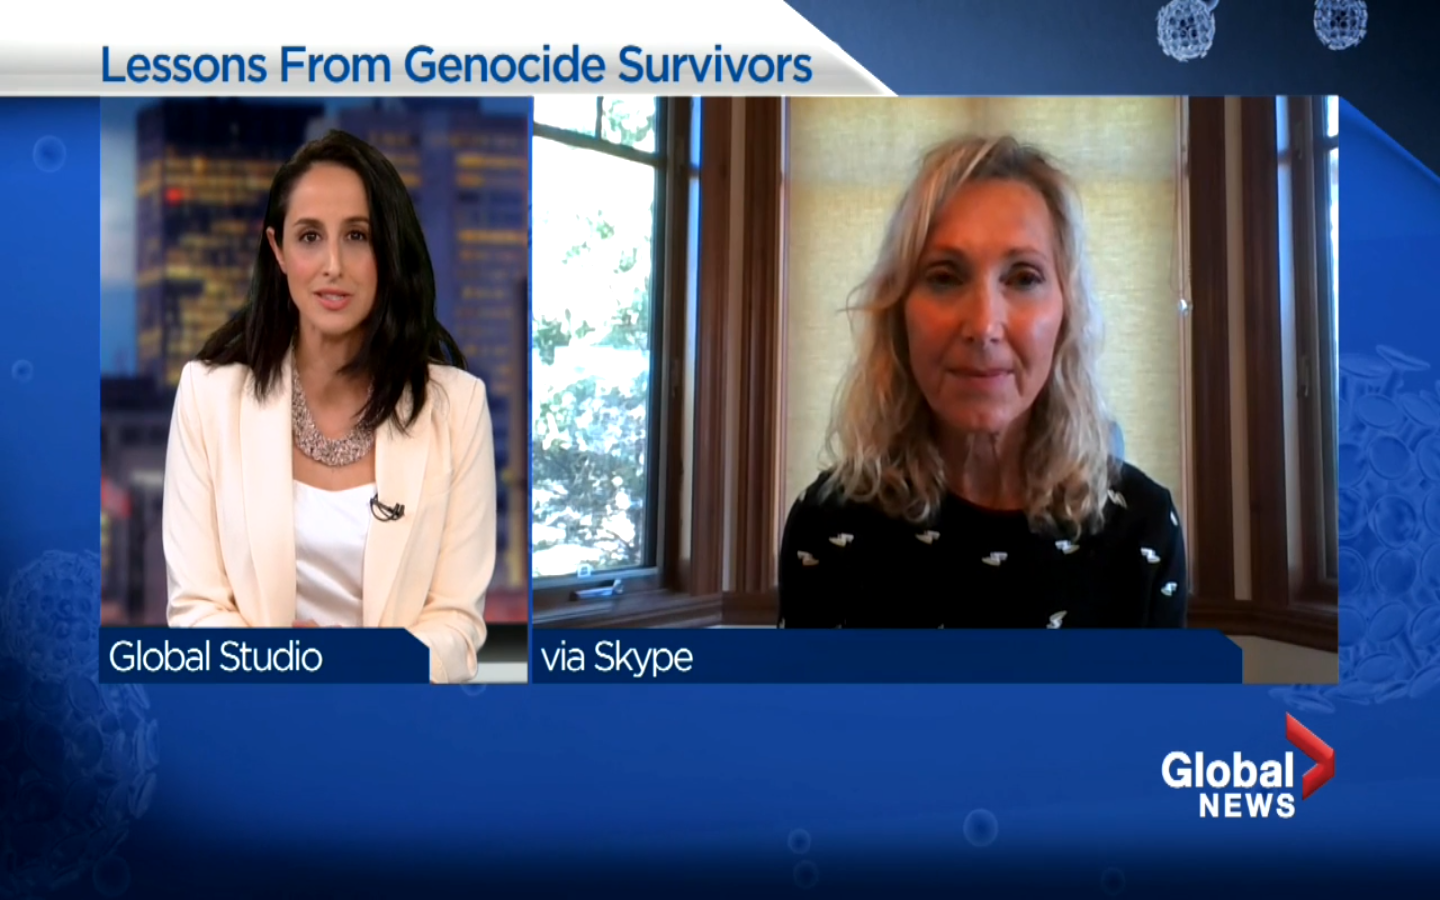 What we can learn from genocide survivors amid the pandemic